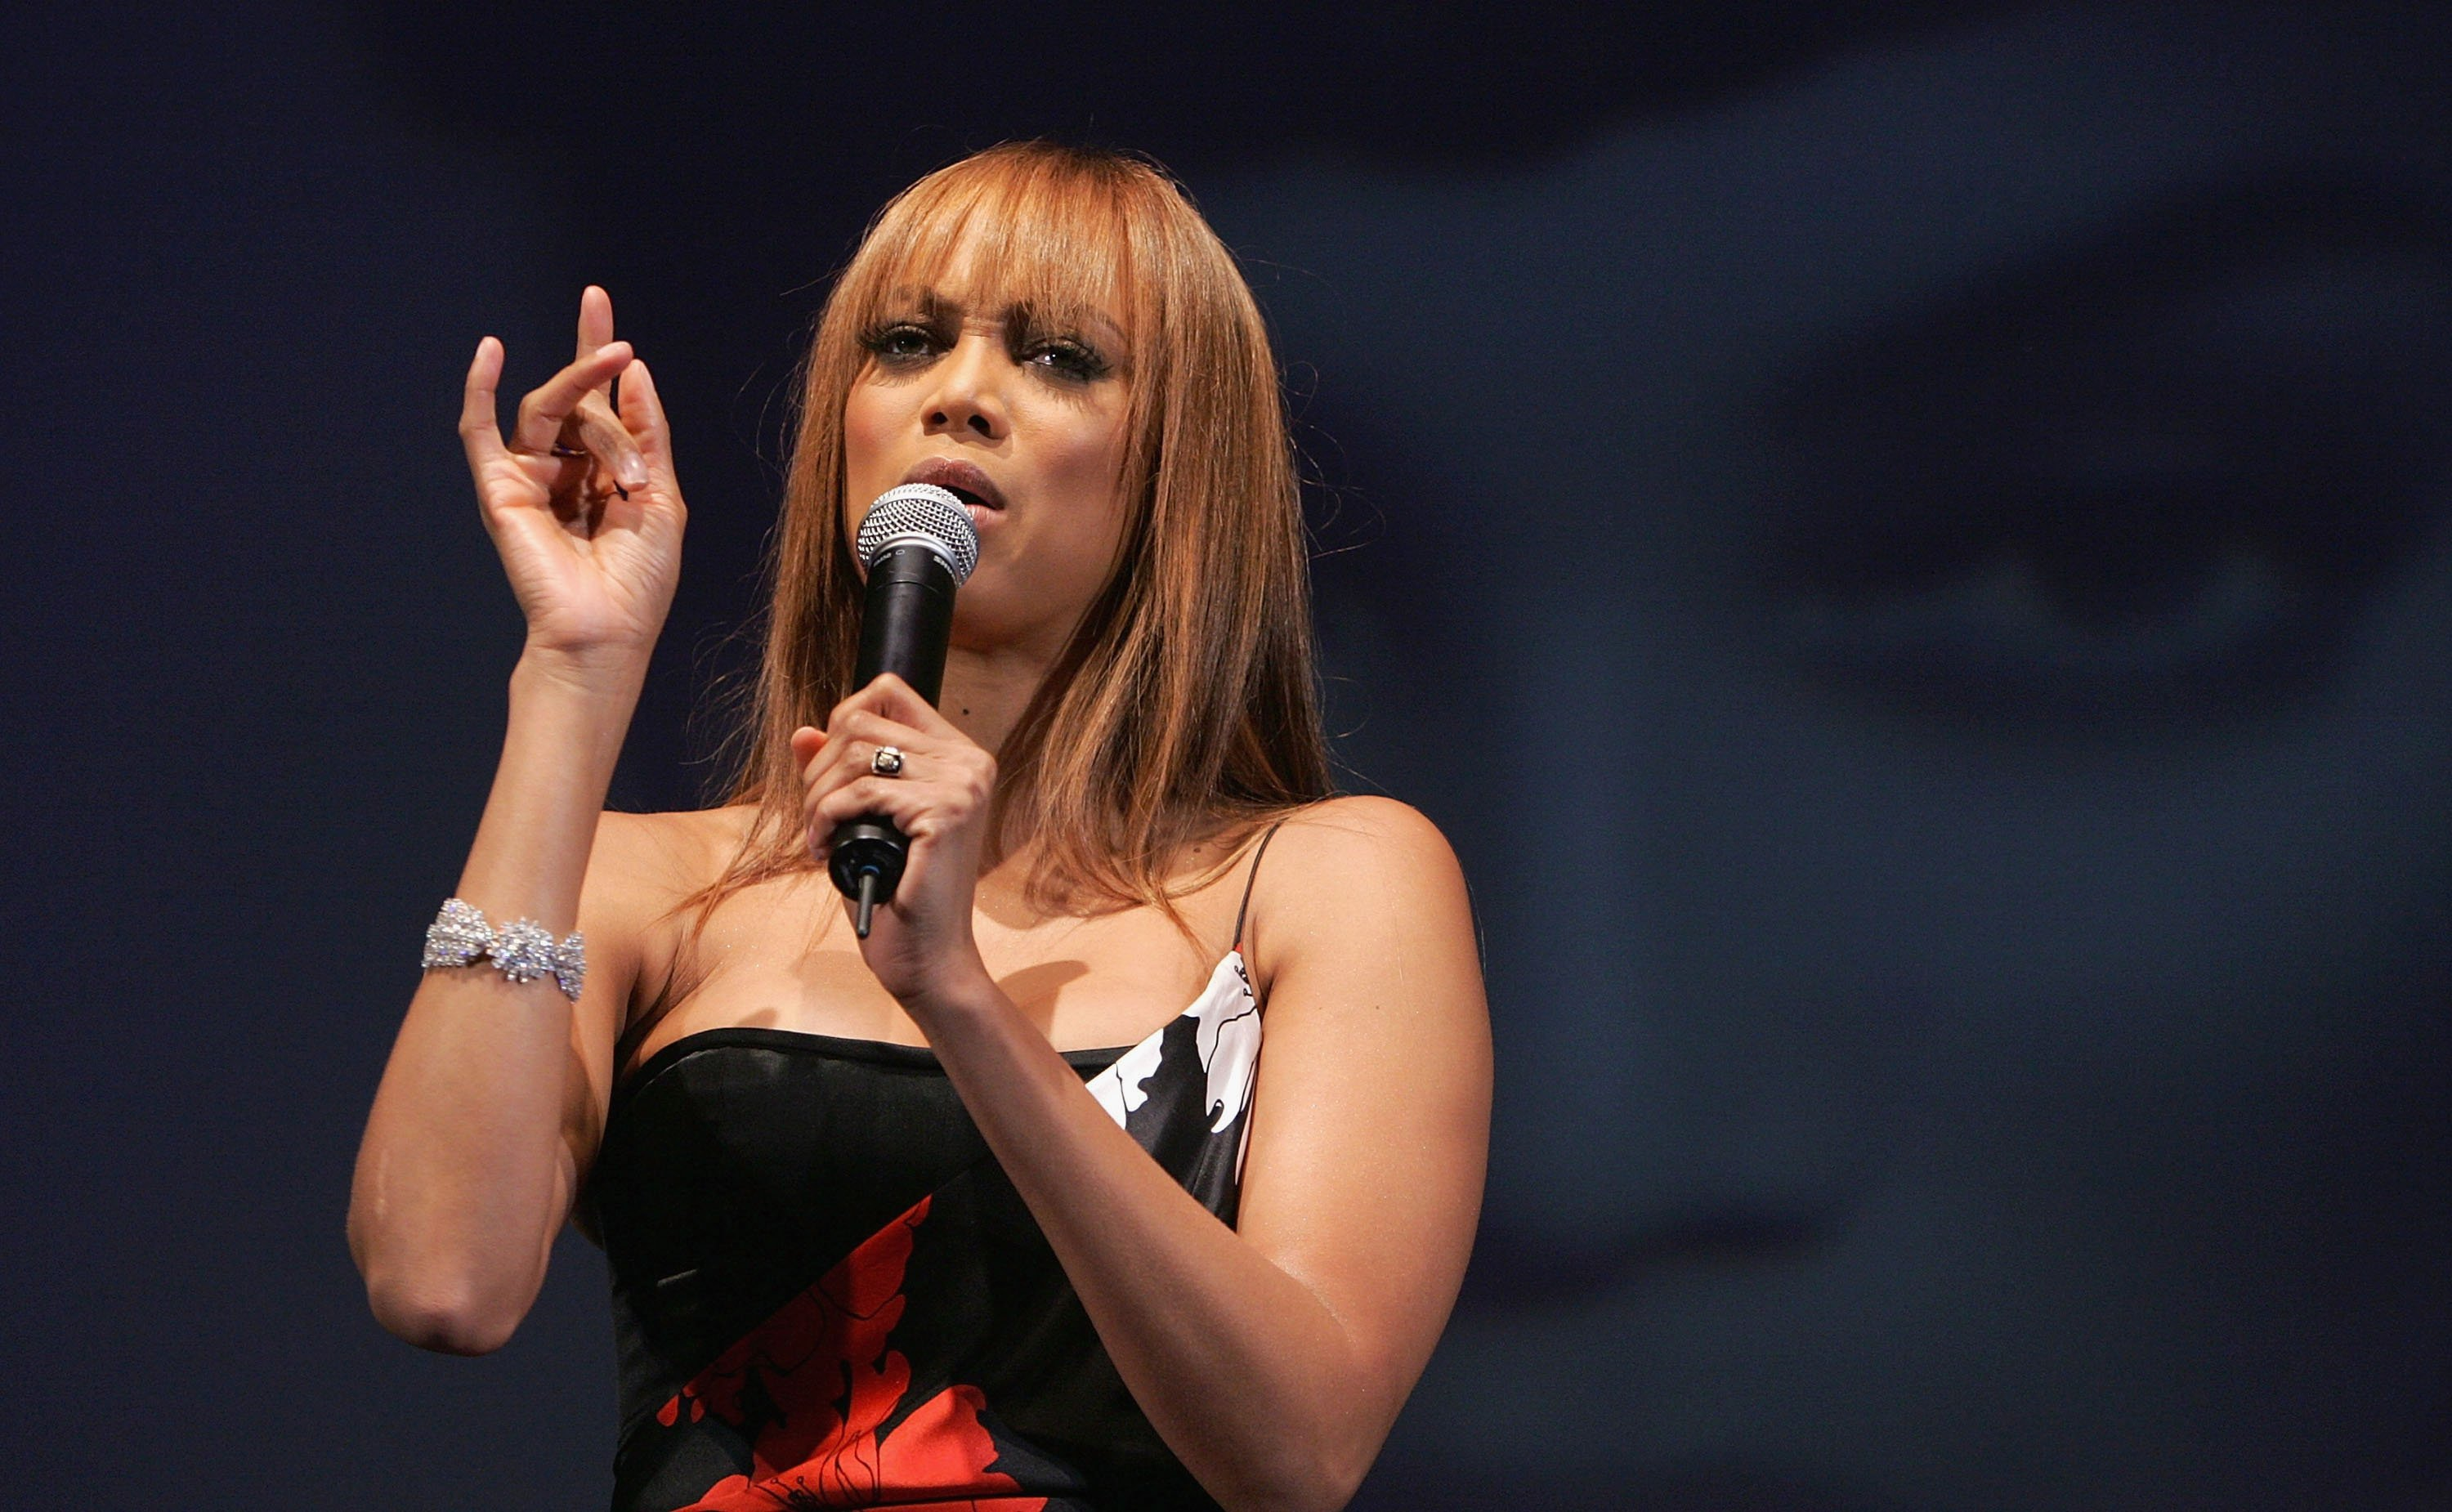 Image Credit: Getty Images / Model Tyra Banks on stage at America's Next Top Model Cycle 5 Finale Event after party held at the The Avalon on December 7, 2005 in Los Angeles.